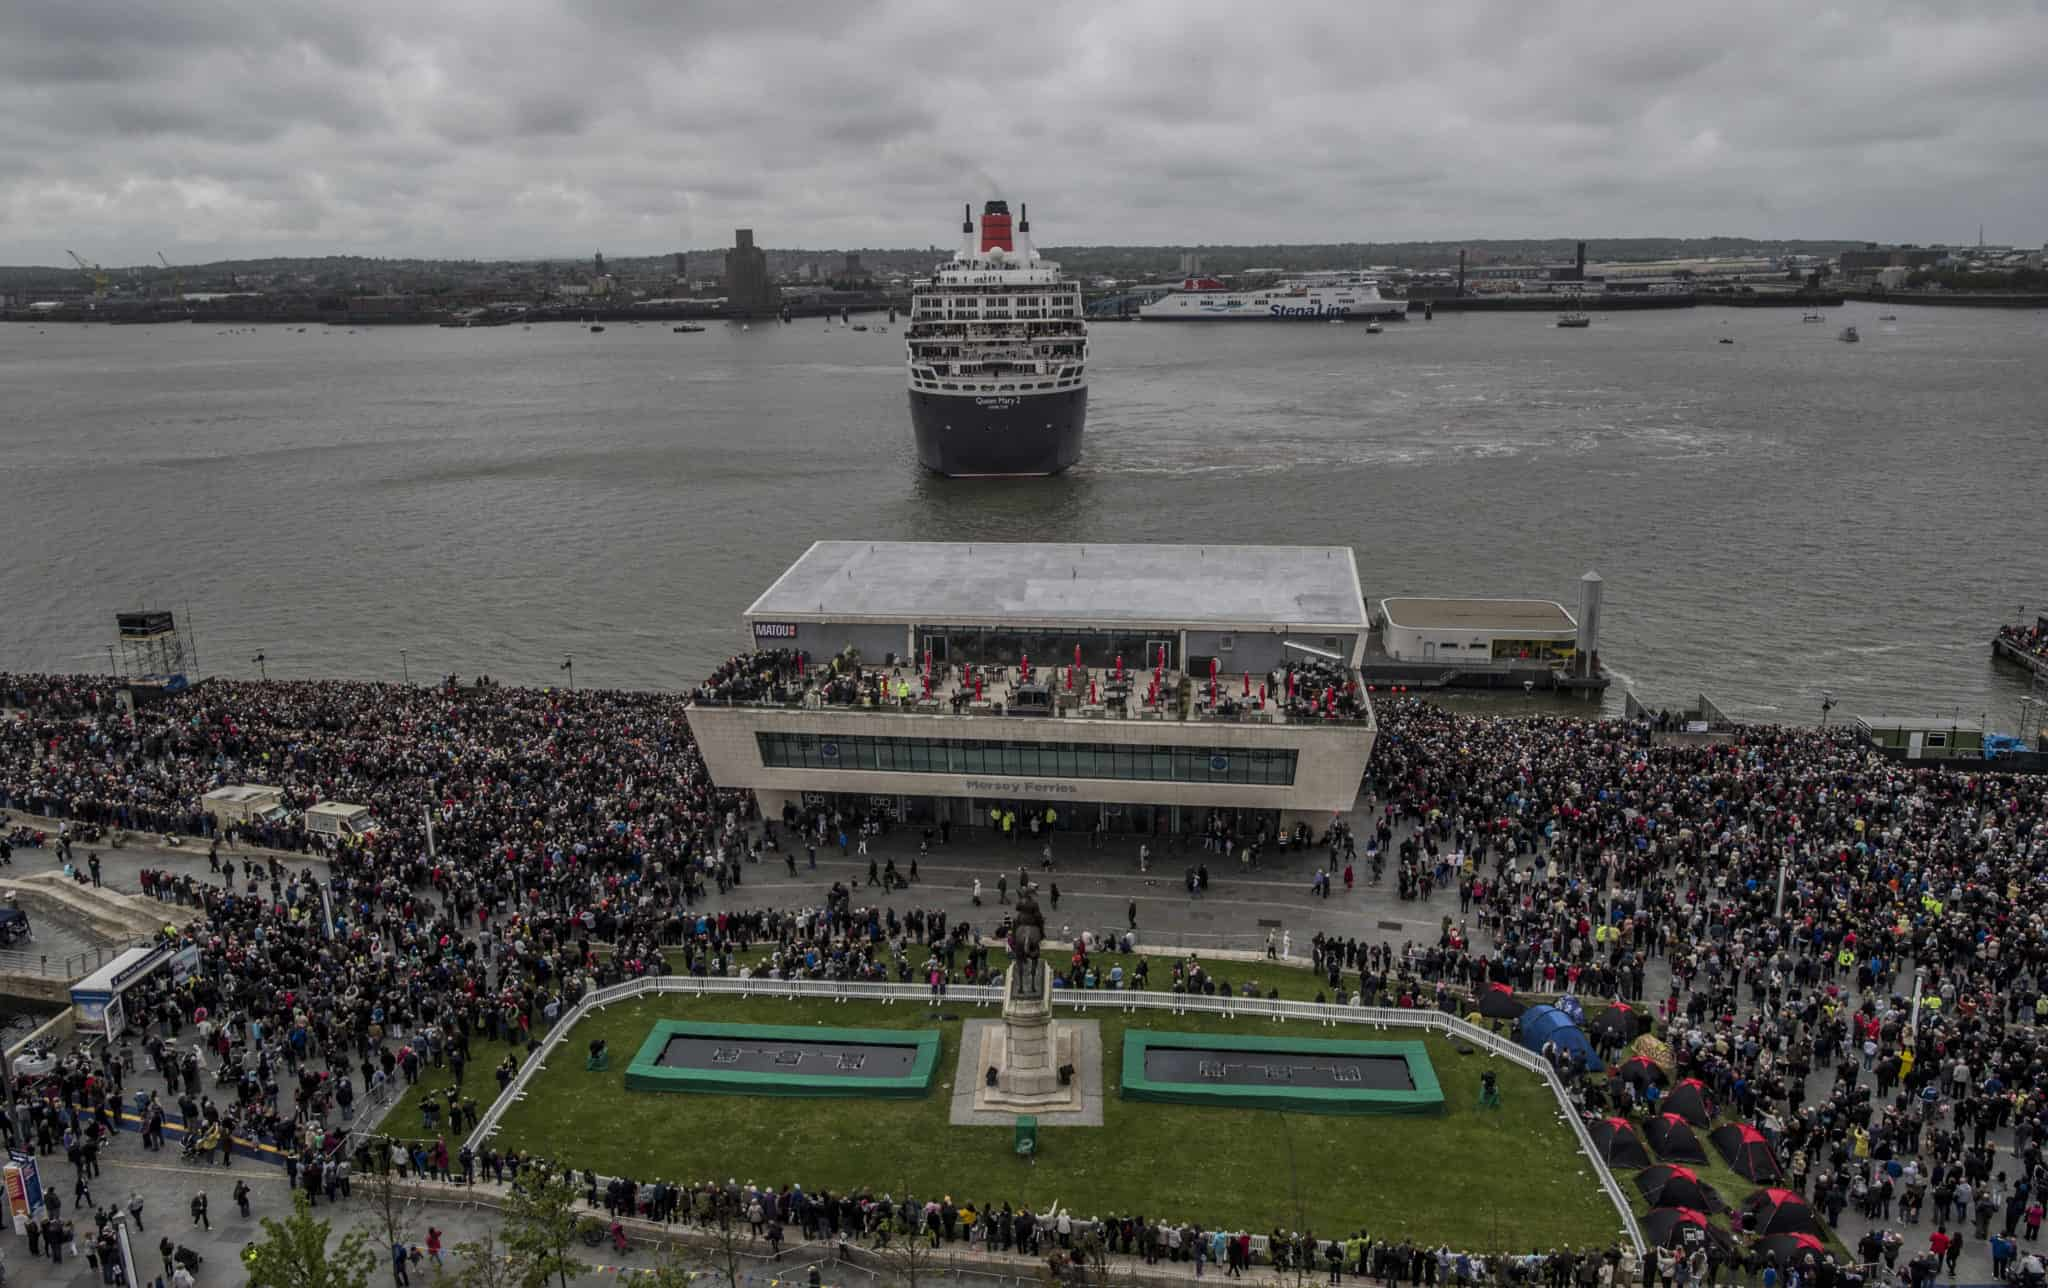 Passengers onboard the Queen Mary 2 wave to the huge crowds gathered along Liverpool's Pier Head to catch a glimpse of Cunard's Three Queens - Queen Mary 2, Queen Elizabeth and Queen Victoria cruise liners - on a historic visit to Liverpool to mark Cunard's 175th anniversary. Photo by James Maloney